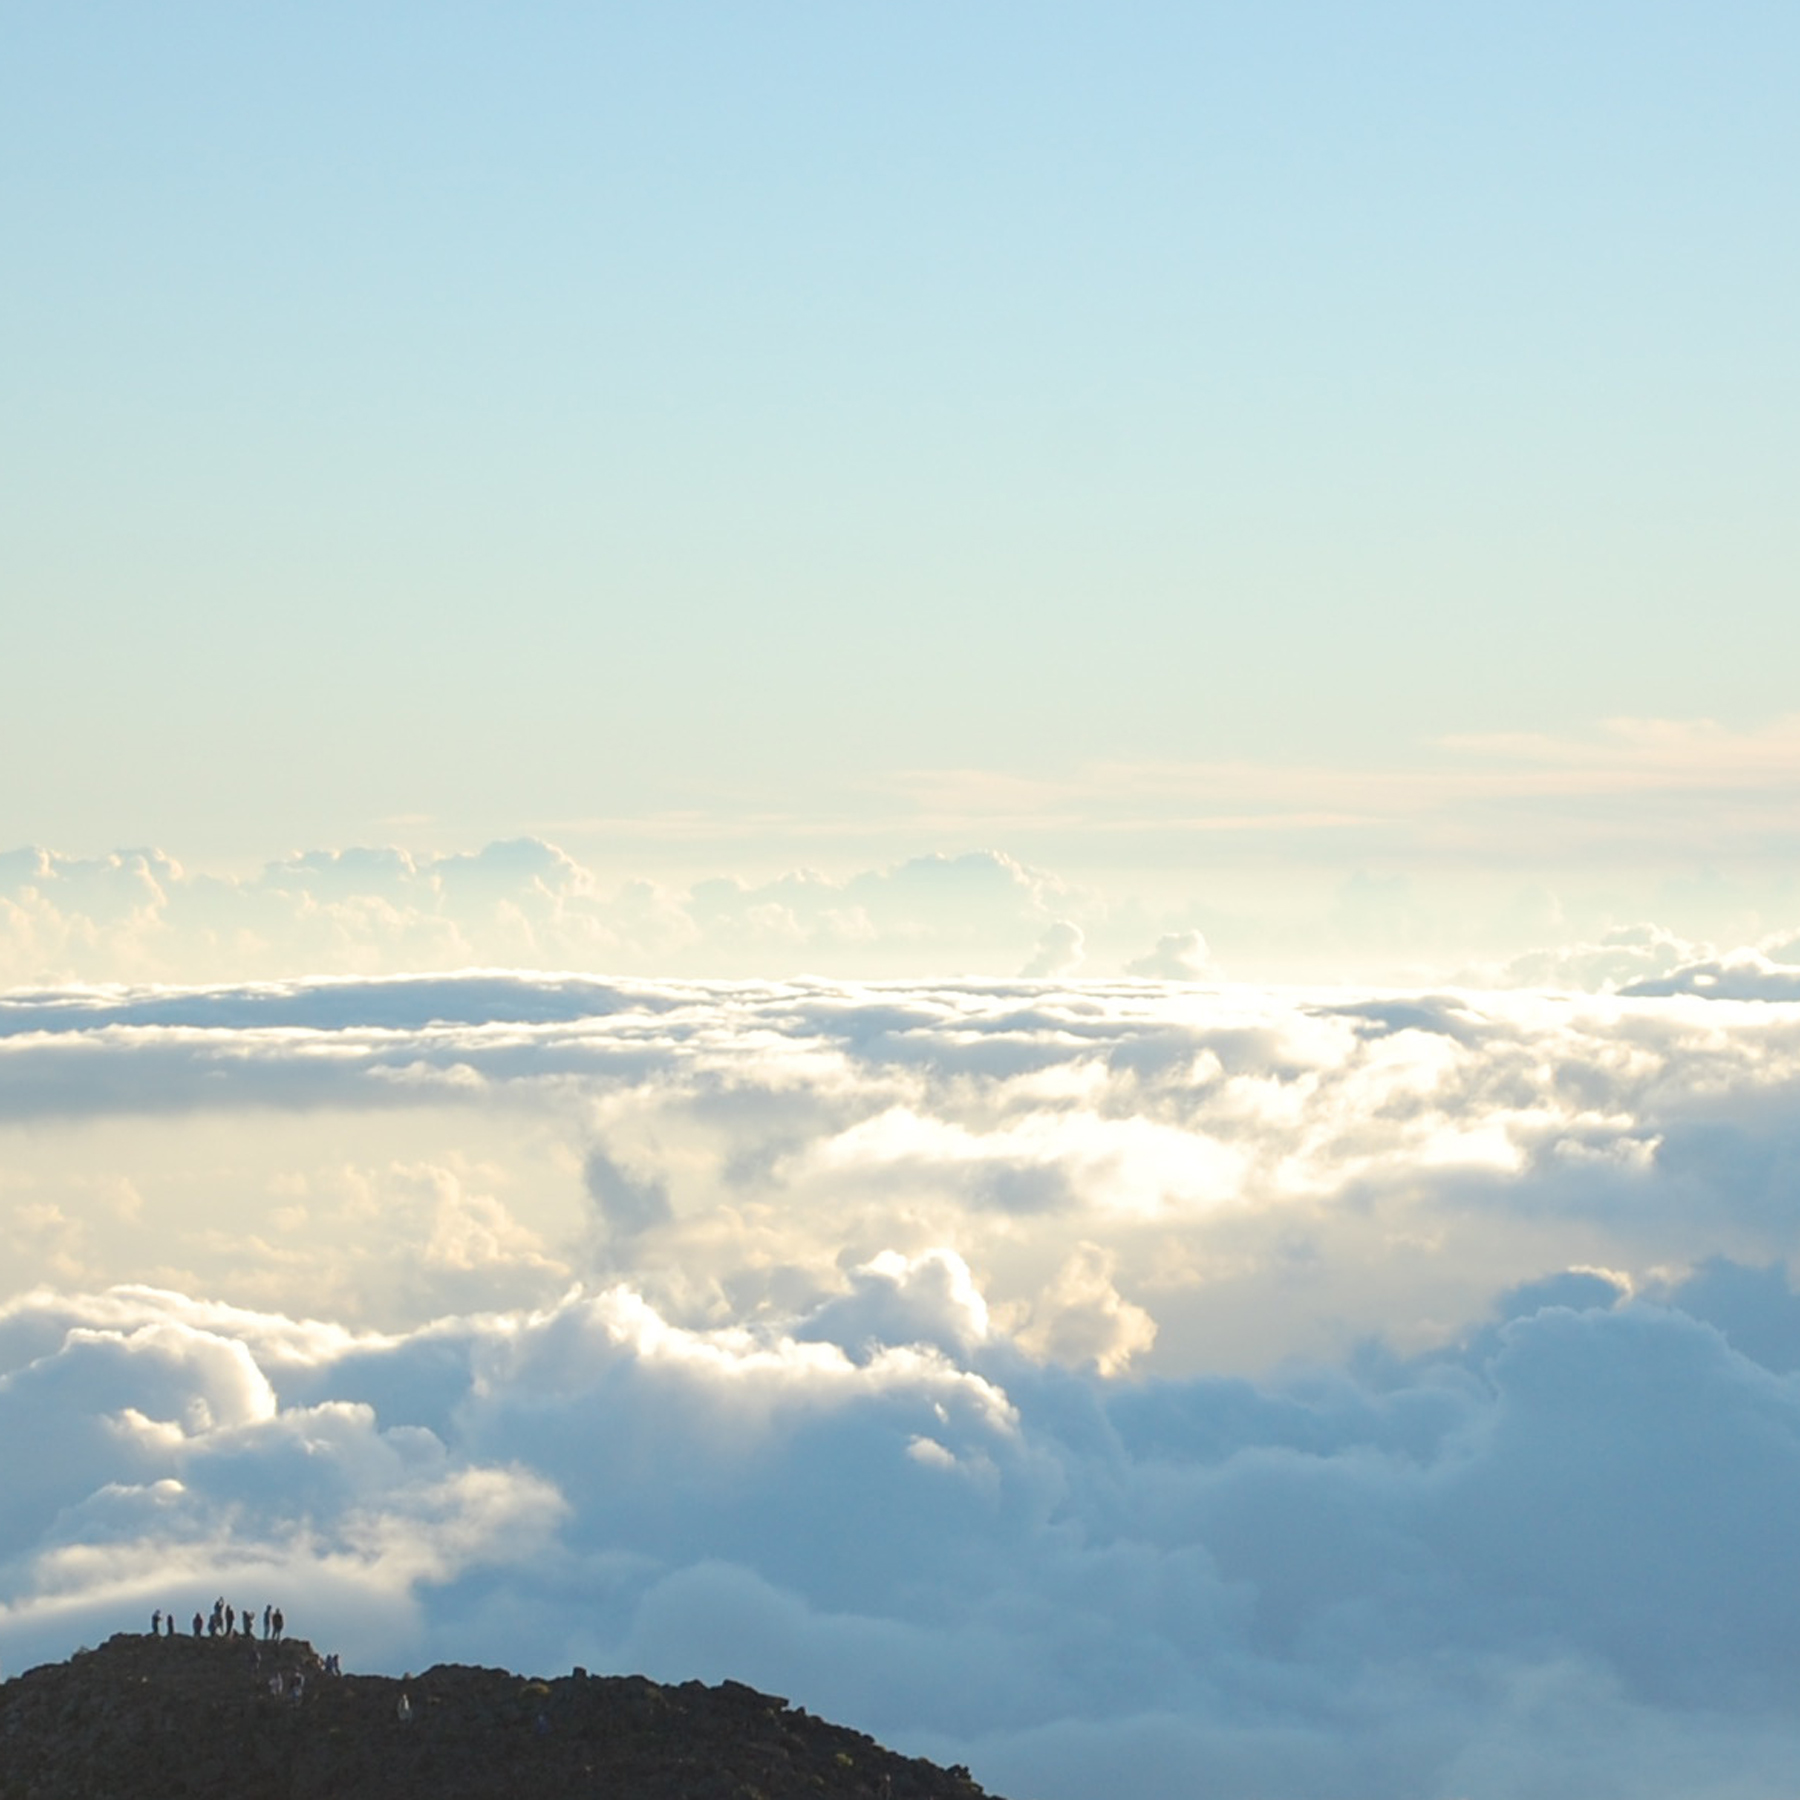 Sitting above the clouds at sunrise.